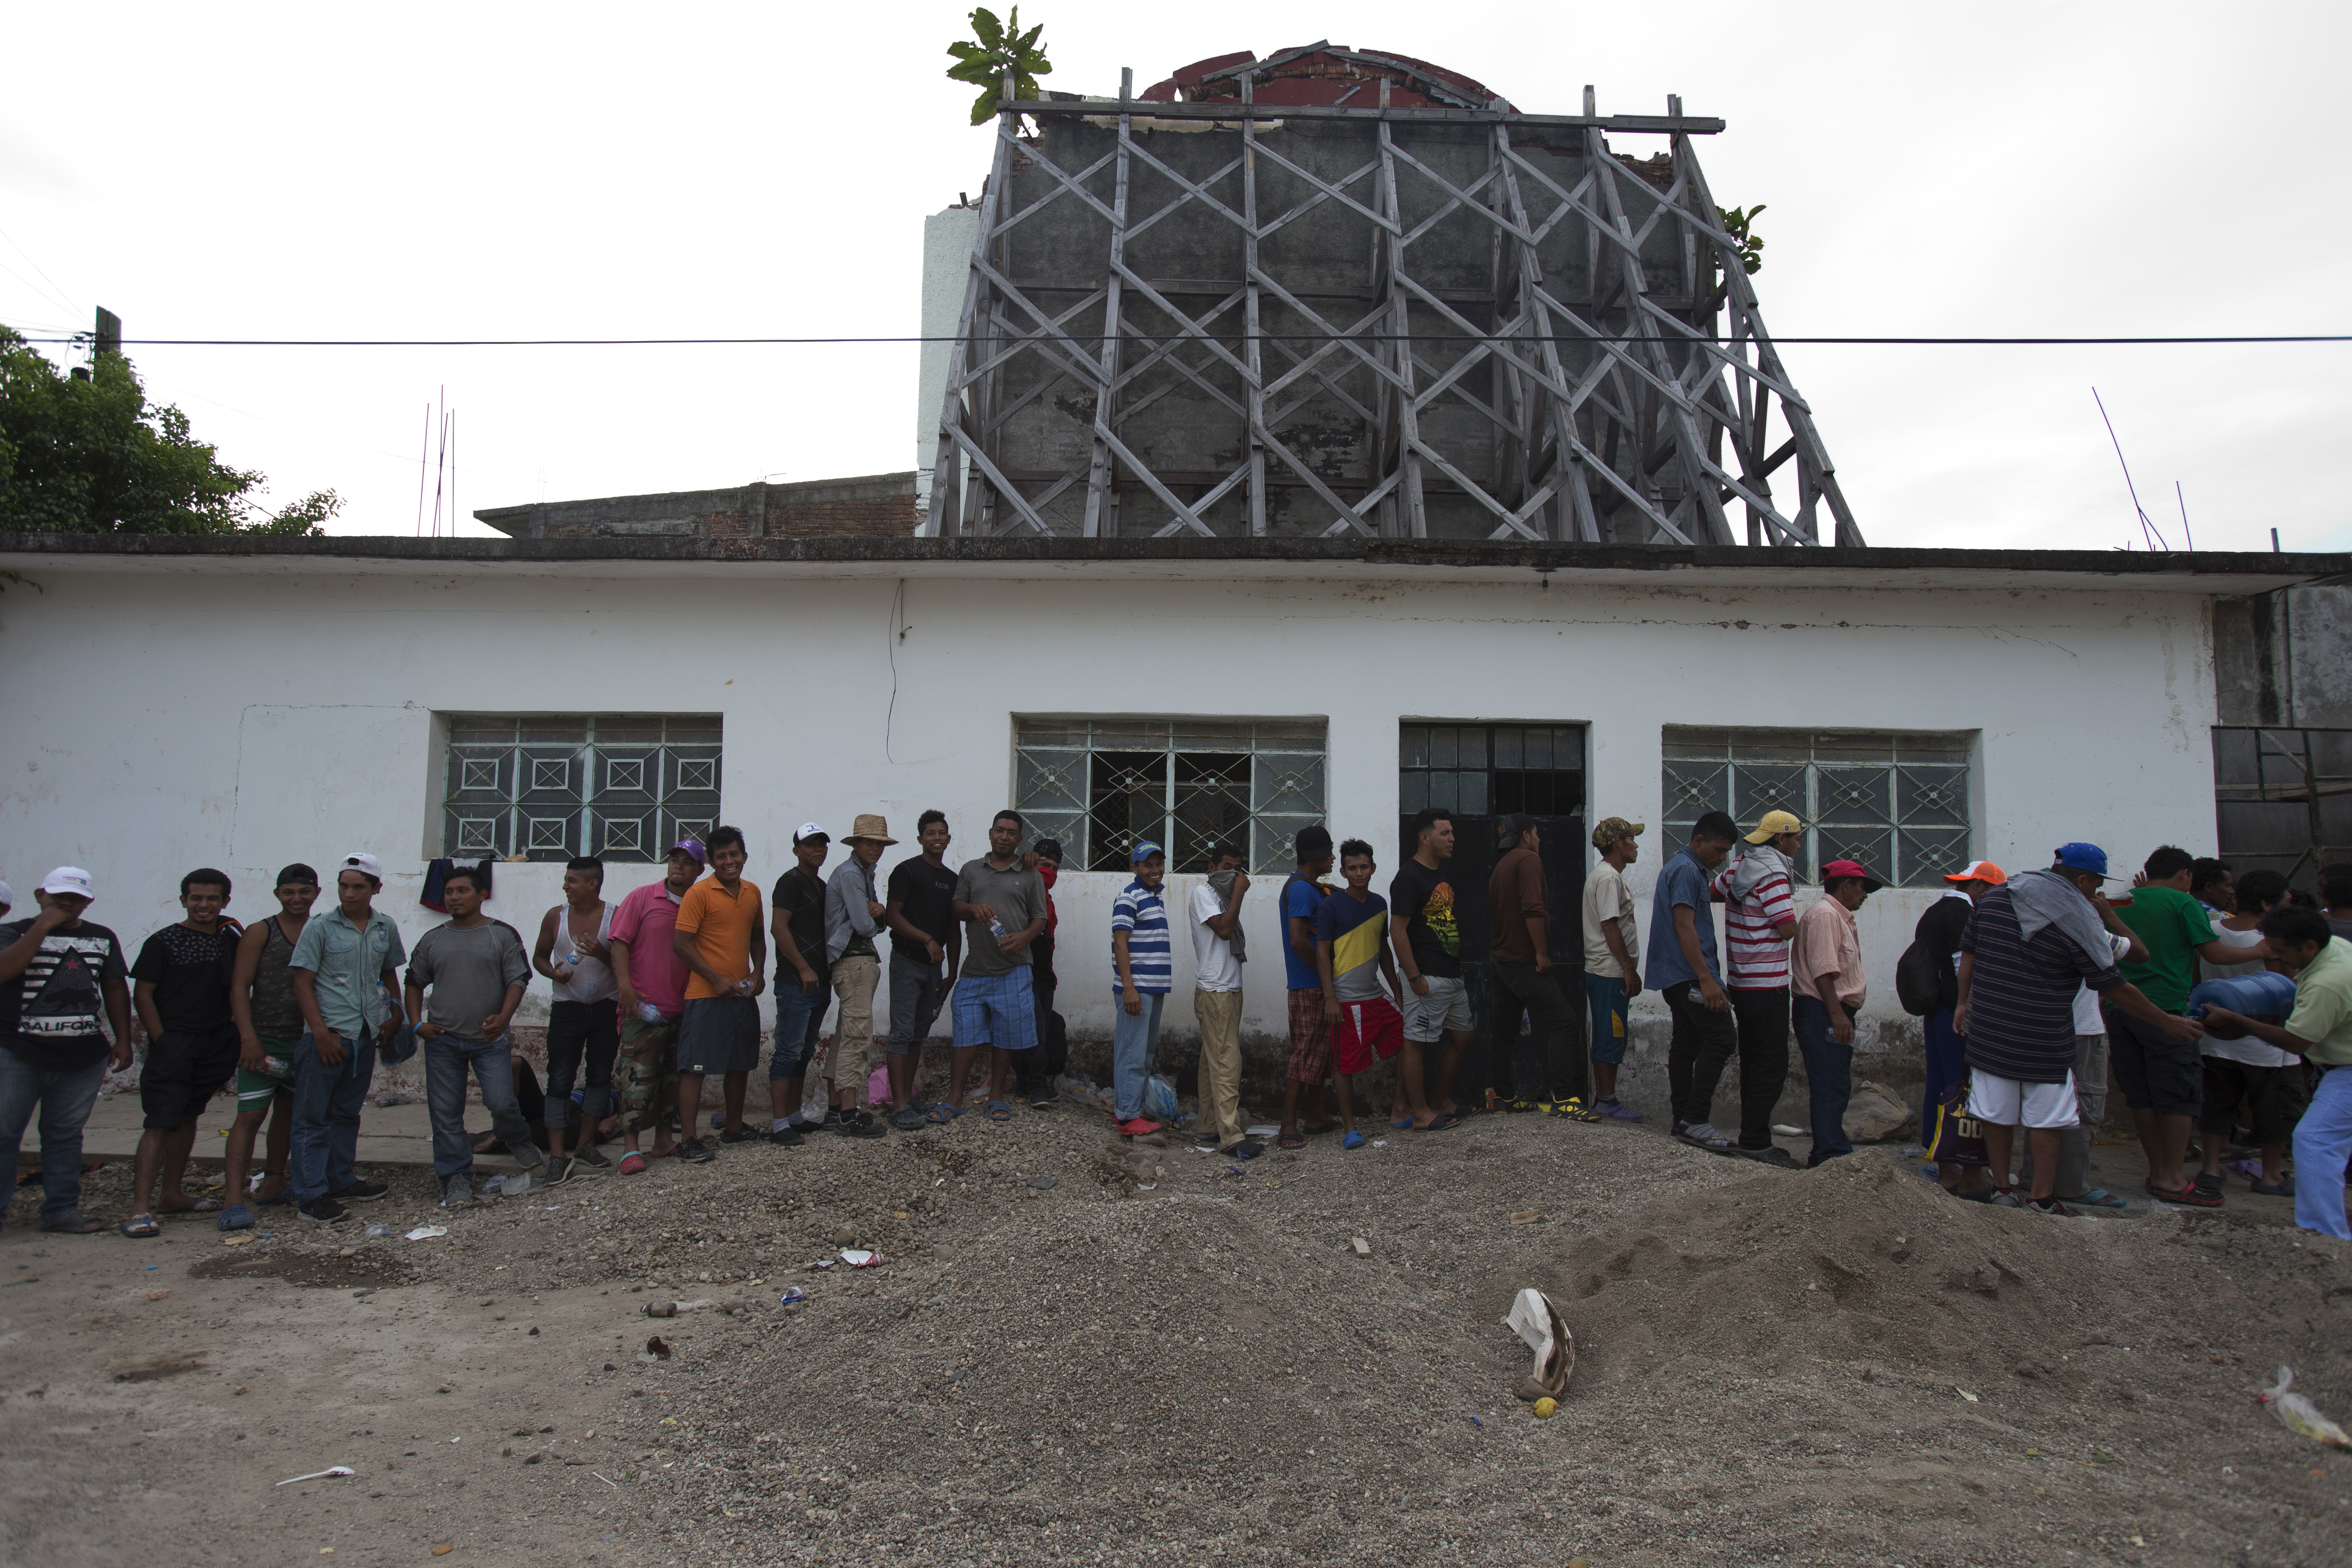 Migrants line up to receive food at a church that was heavily damaged in a 2017 earthquake, as a thousands-strong caravan of Central Americans hoping to reach the U.S. border stops for the night in Niltepec, Oaxaca state, Mexico on Monday.